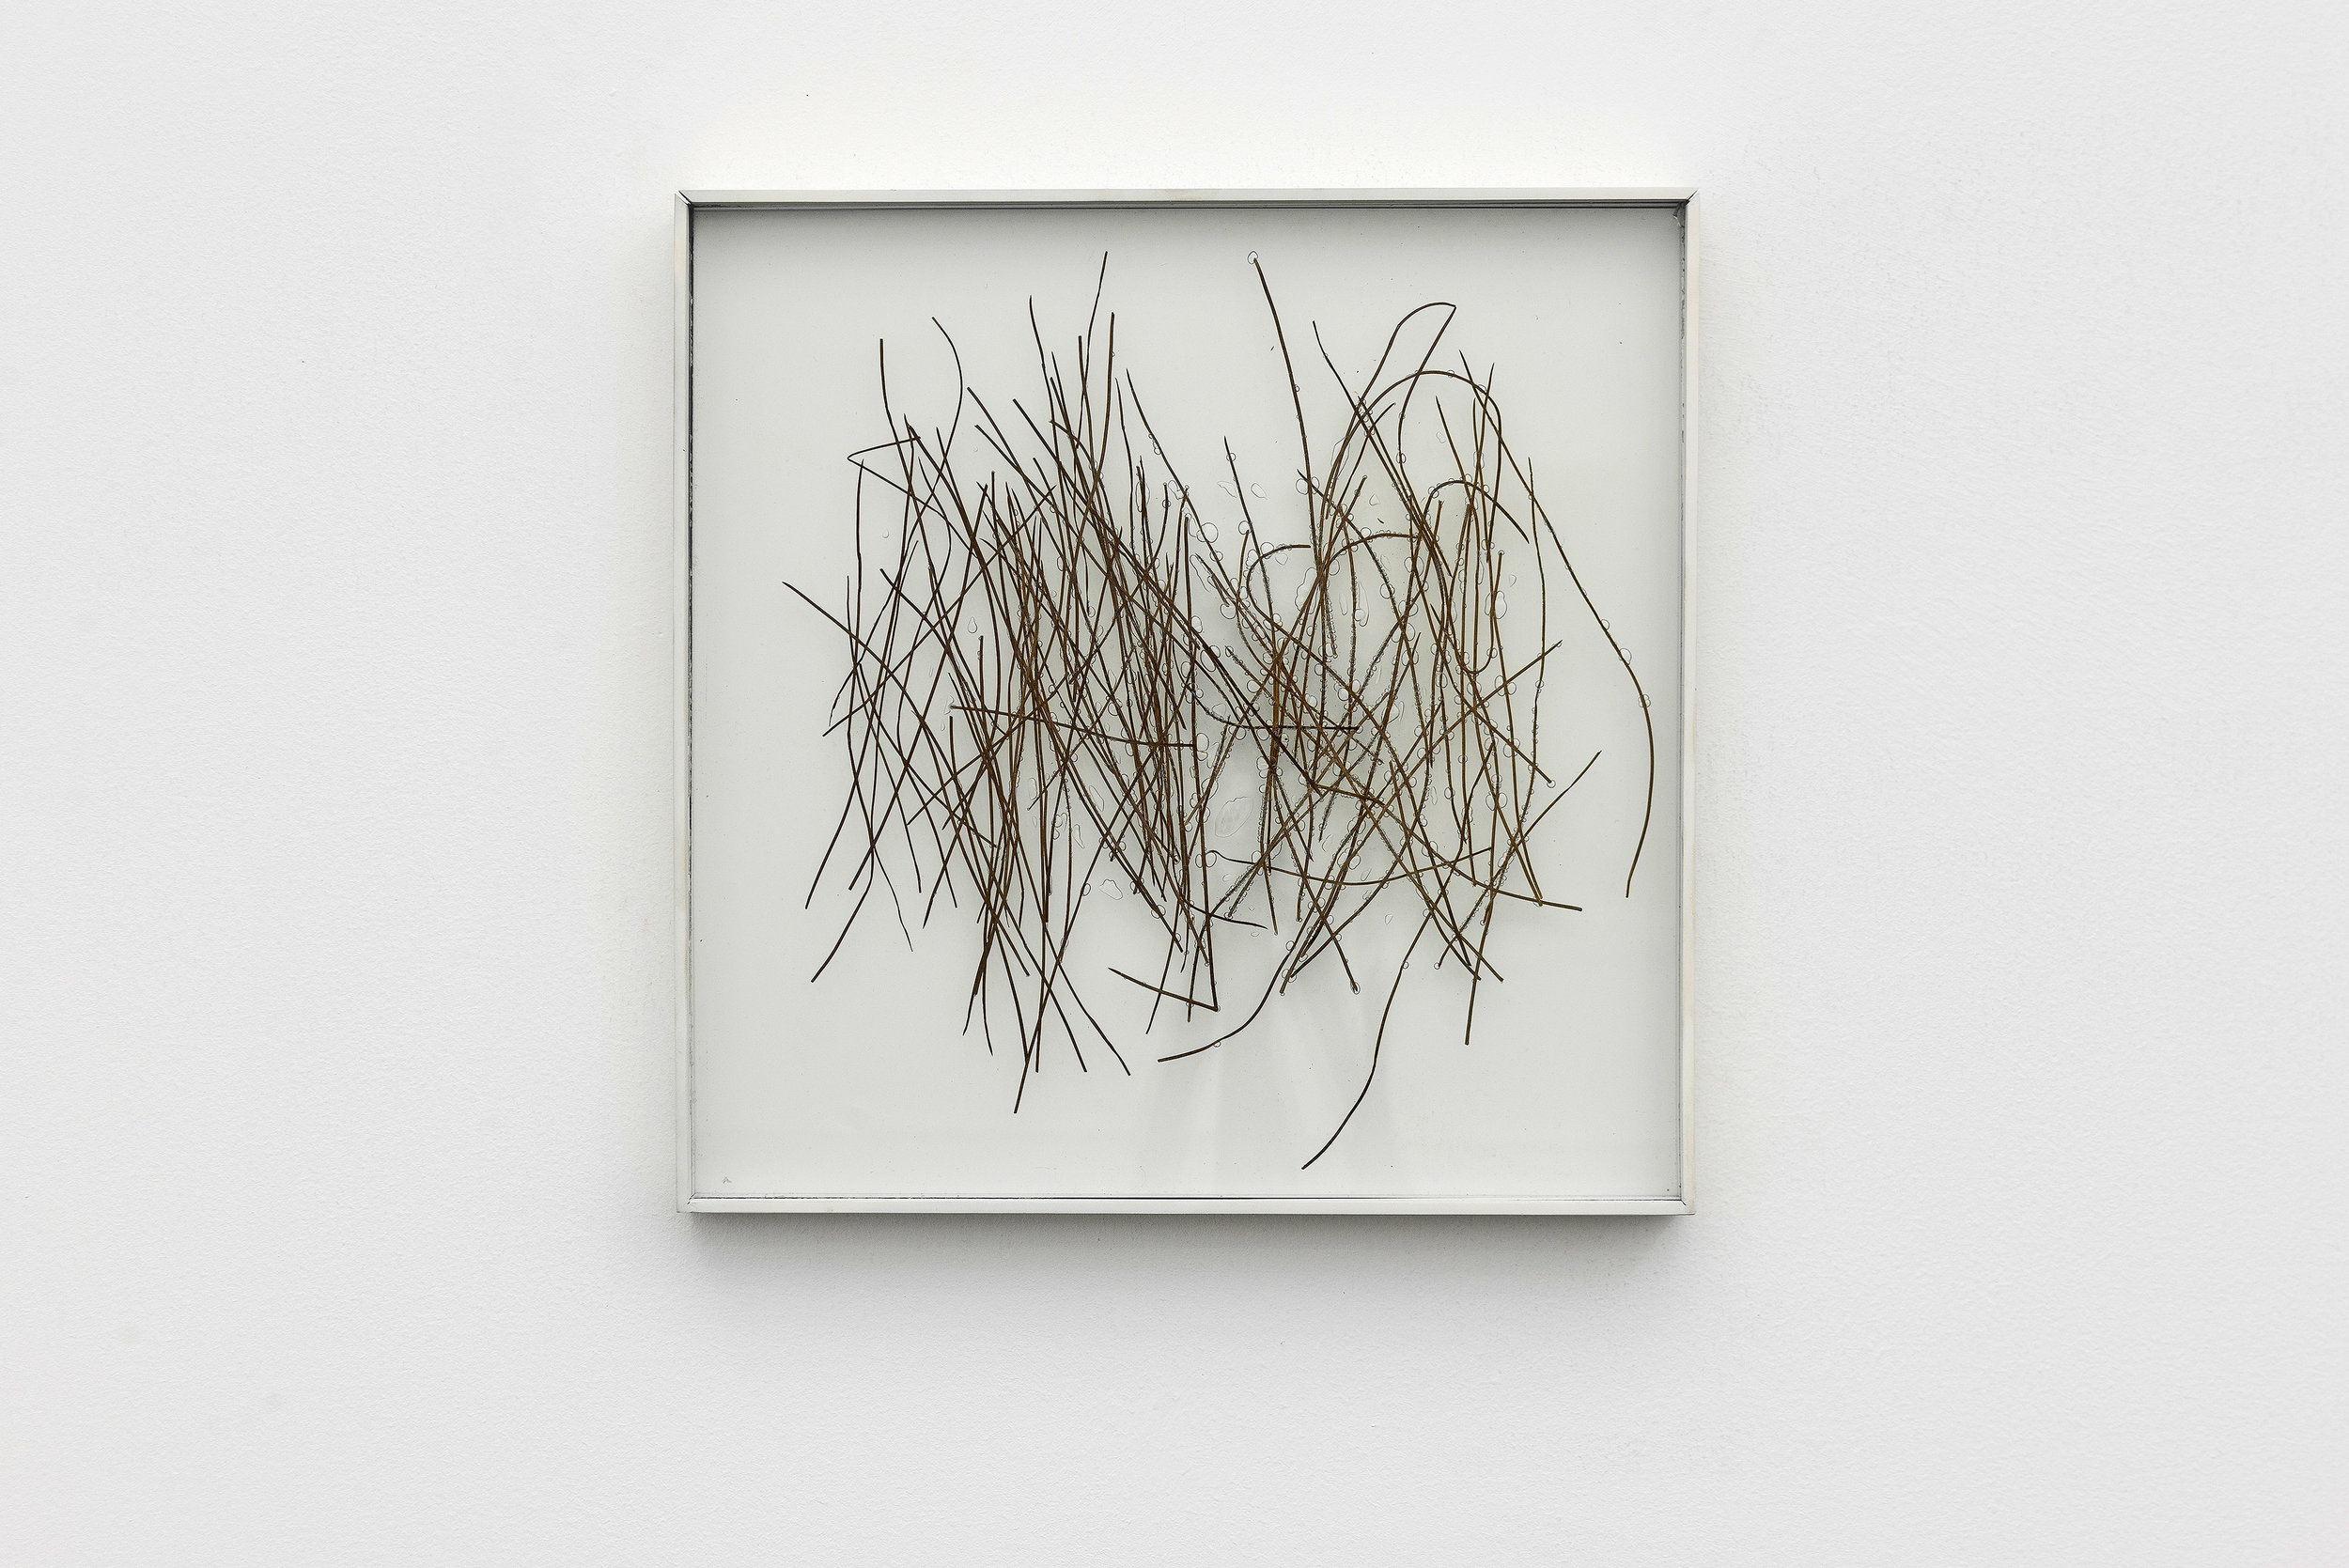 "Untitled 2015. Pine needles inserted in glass. 40cmx40cm (15,7"" x 15,7"")."